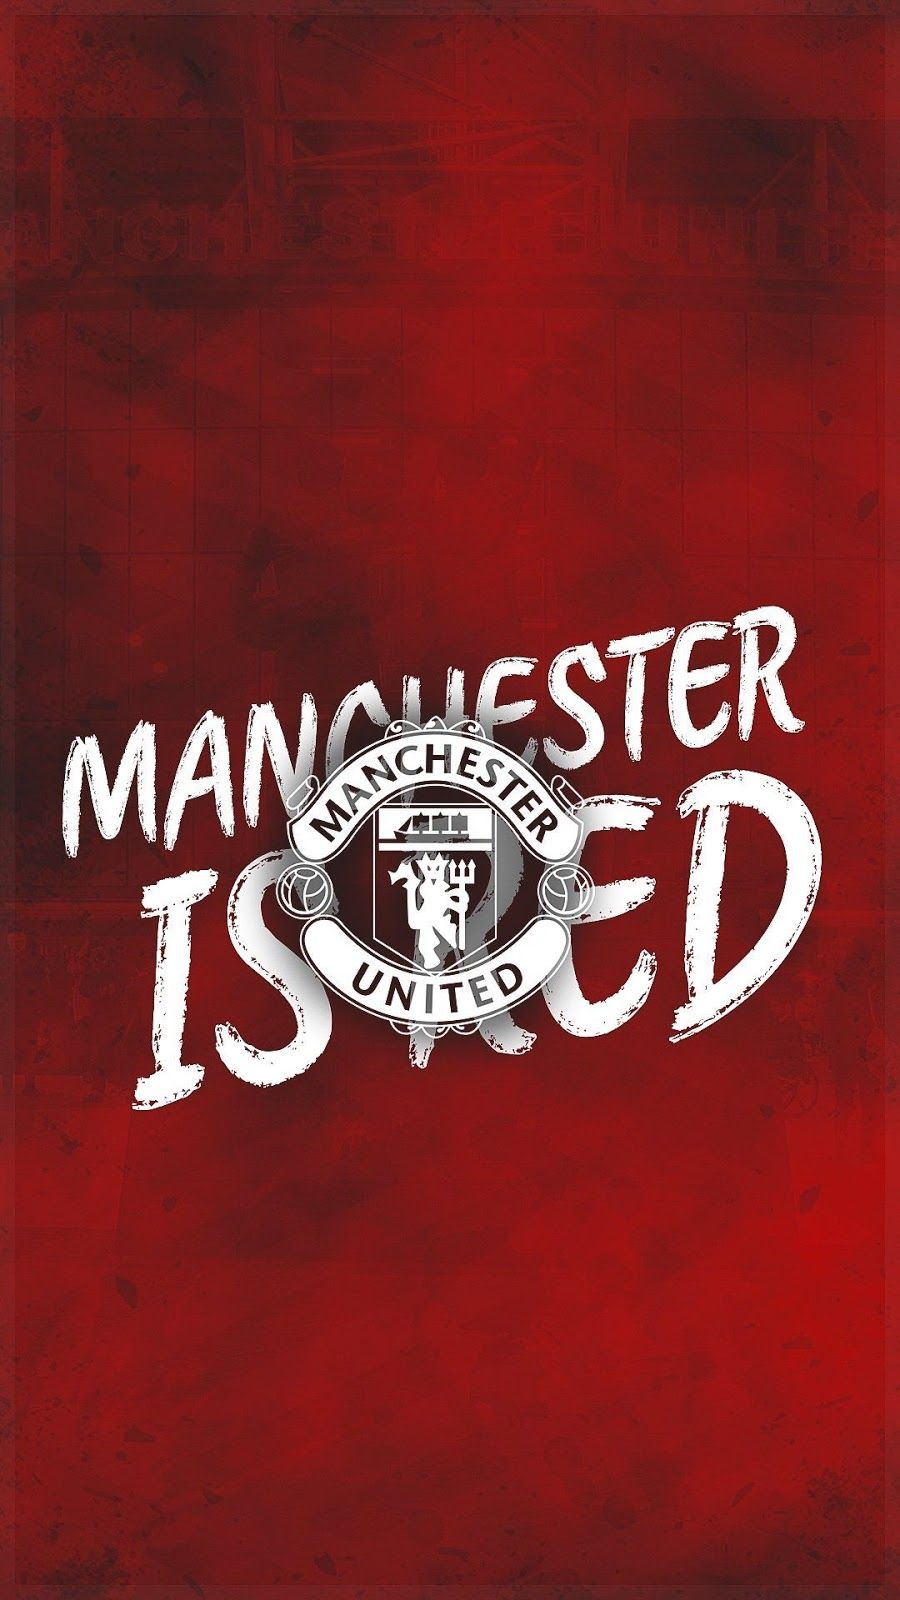 Manchester United Iphone Wallpaper Hd In 2020 Manchester United Wallpaper Manchester United Logo Manchester United Wallpapers Iphone